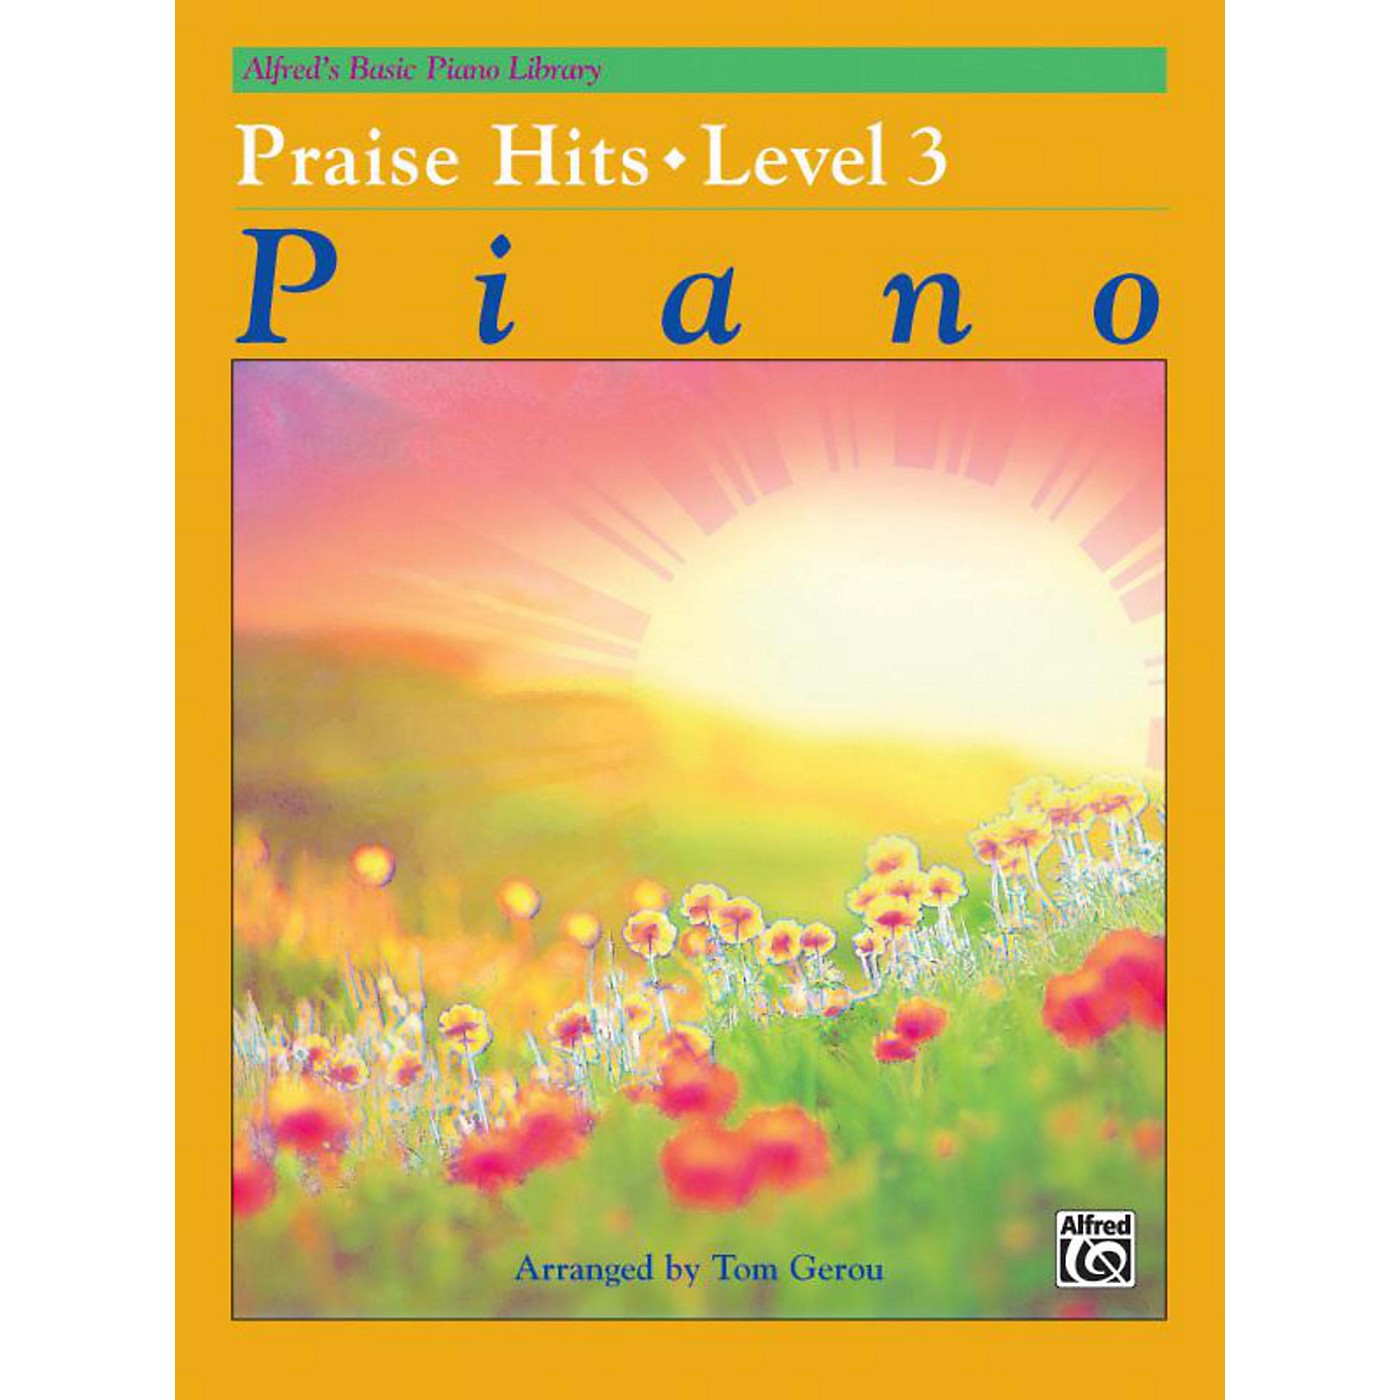 Alfred Alfred's Basic Piano Course Praise Hits Level 3 Book thumbnail